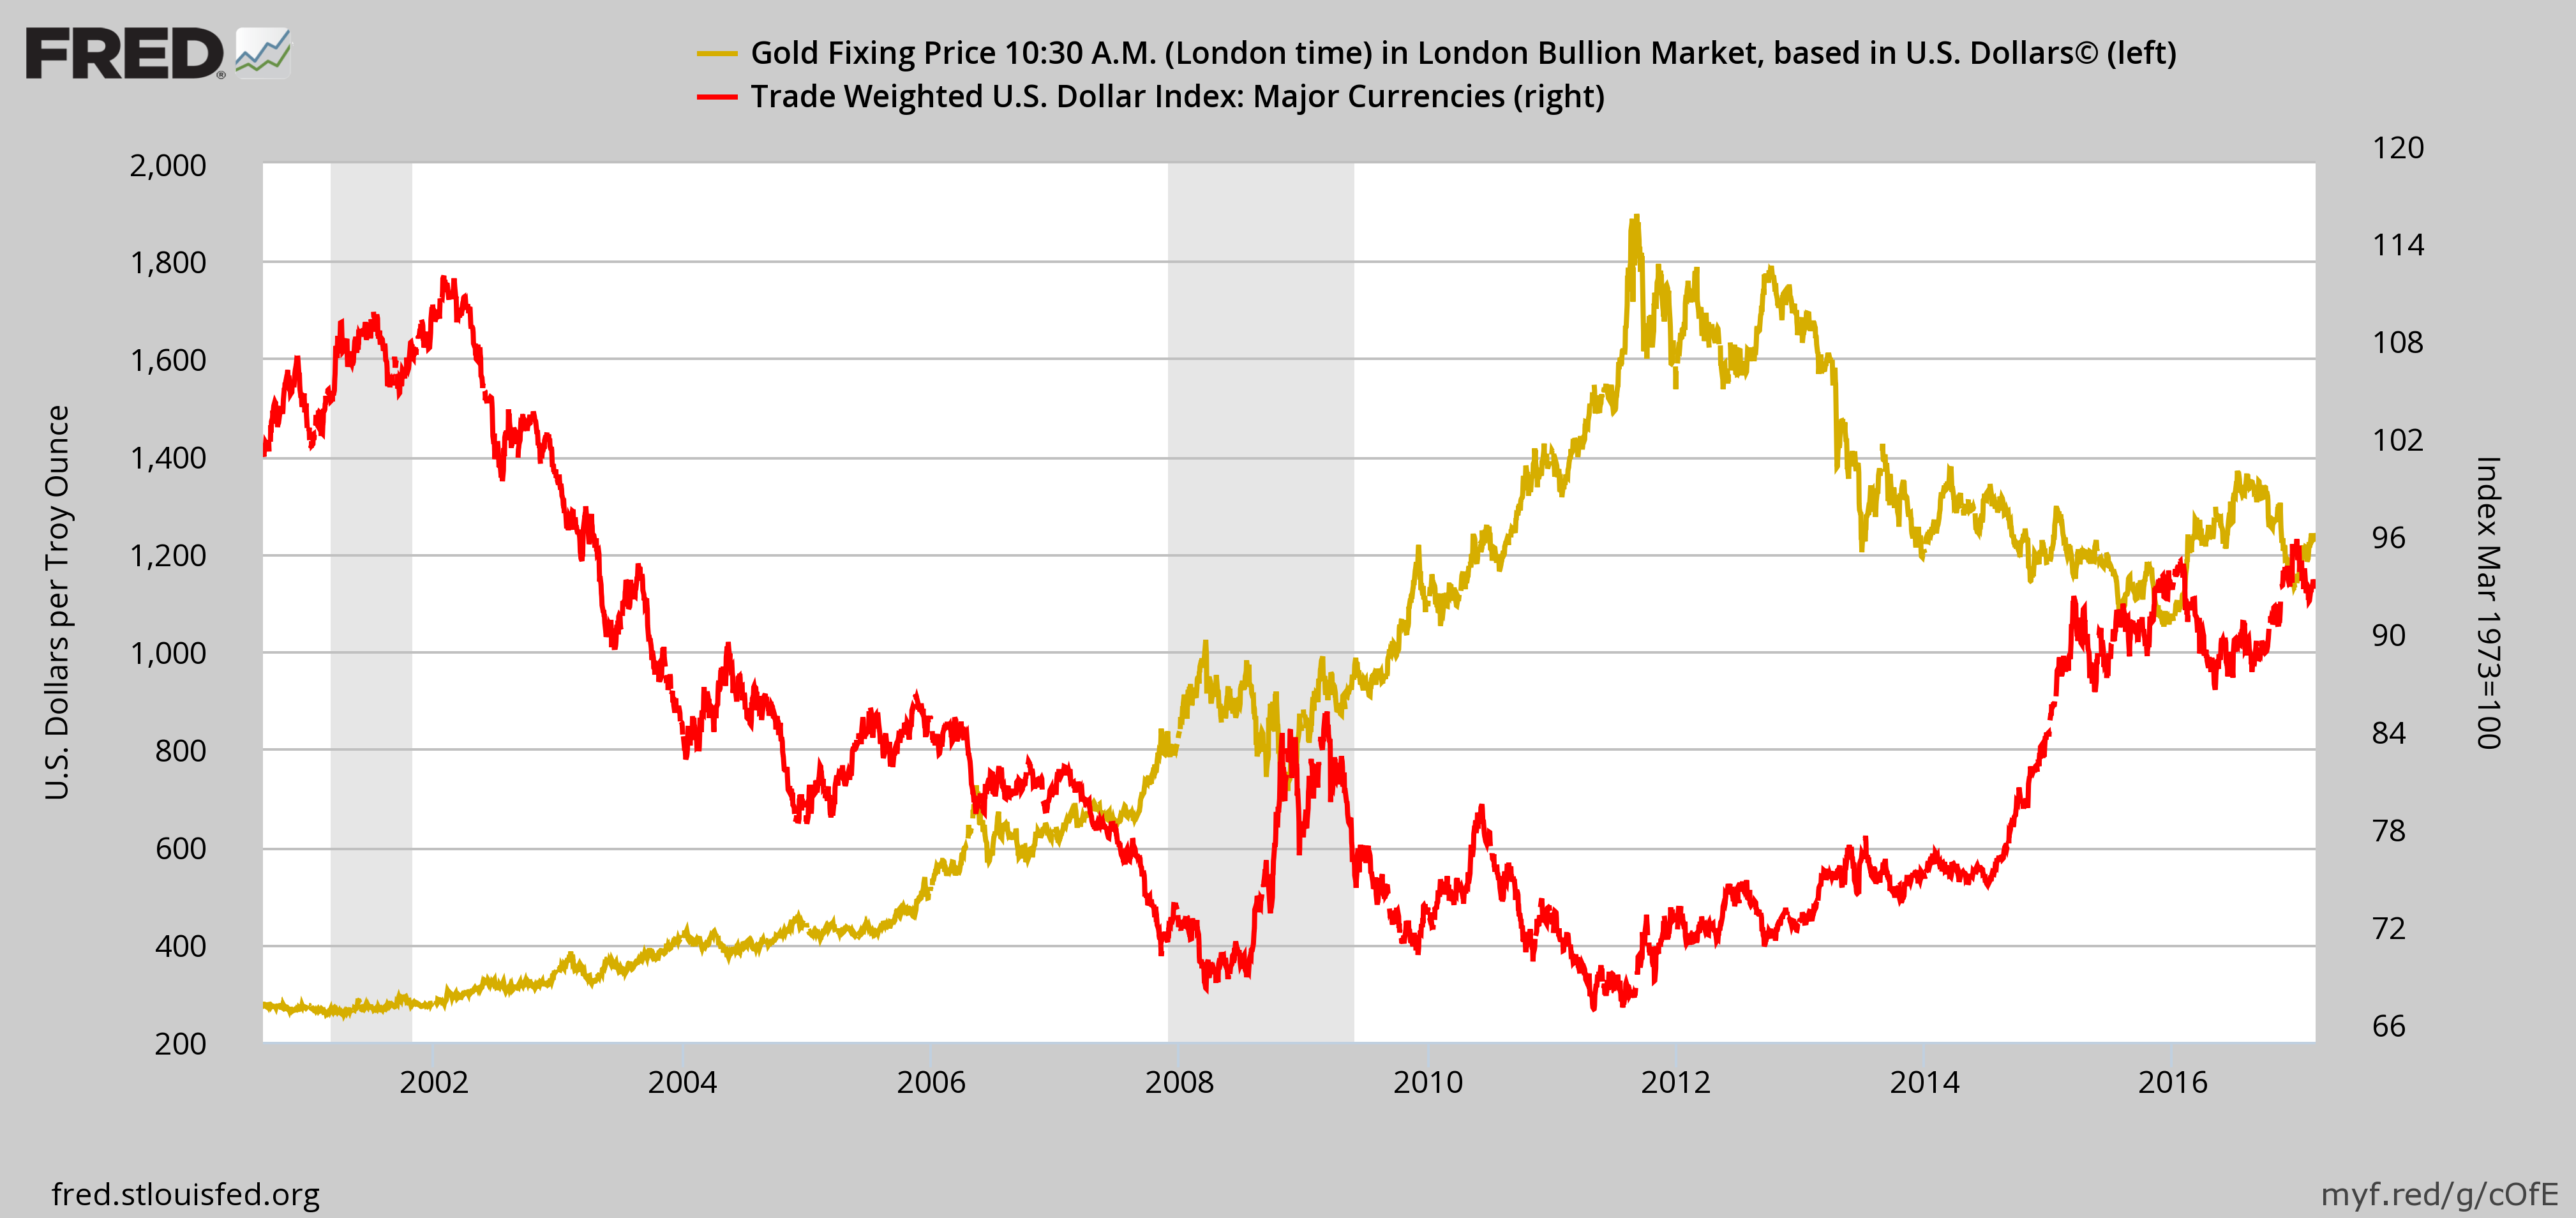 ratio relative price dow indicator bmg value gold